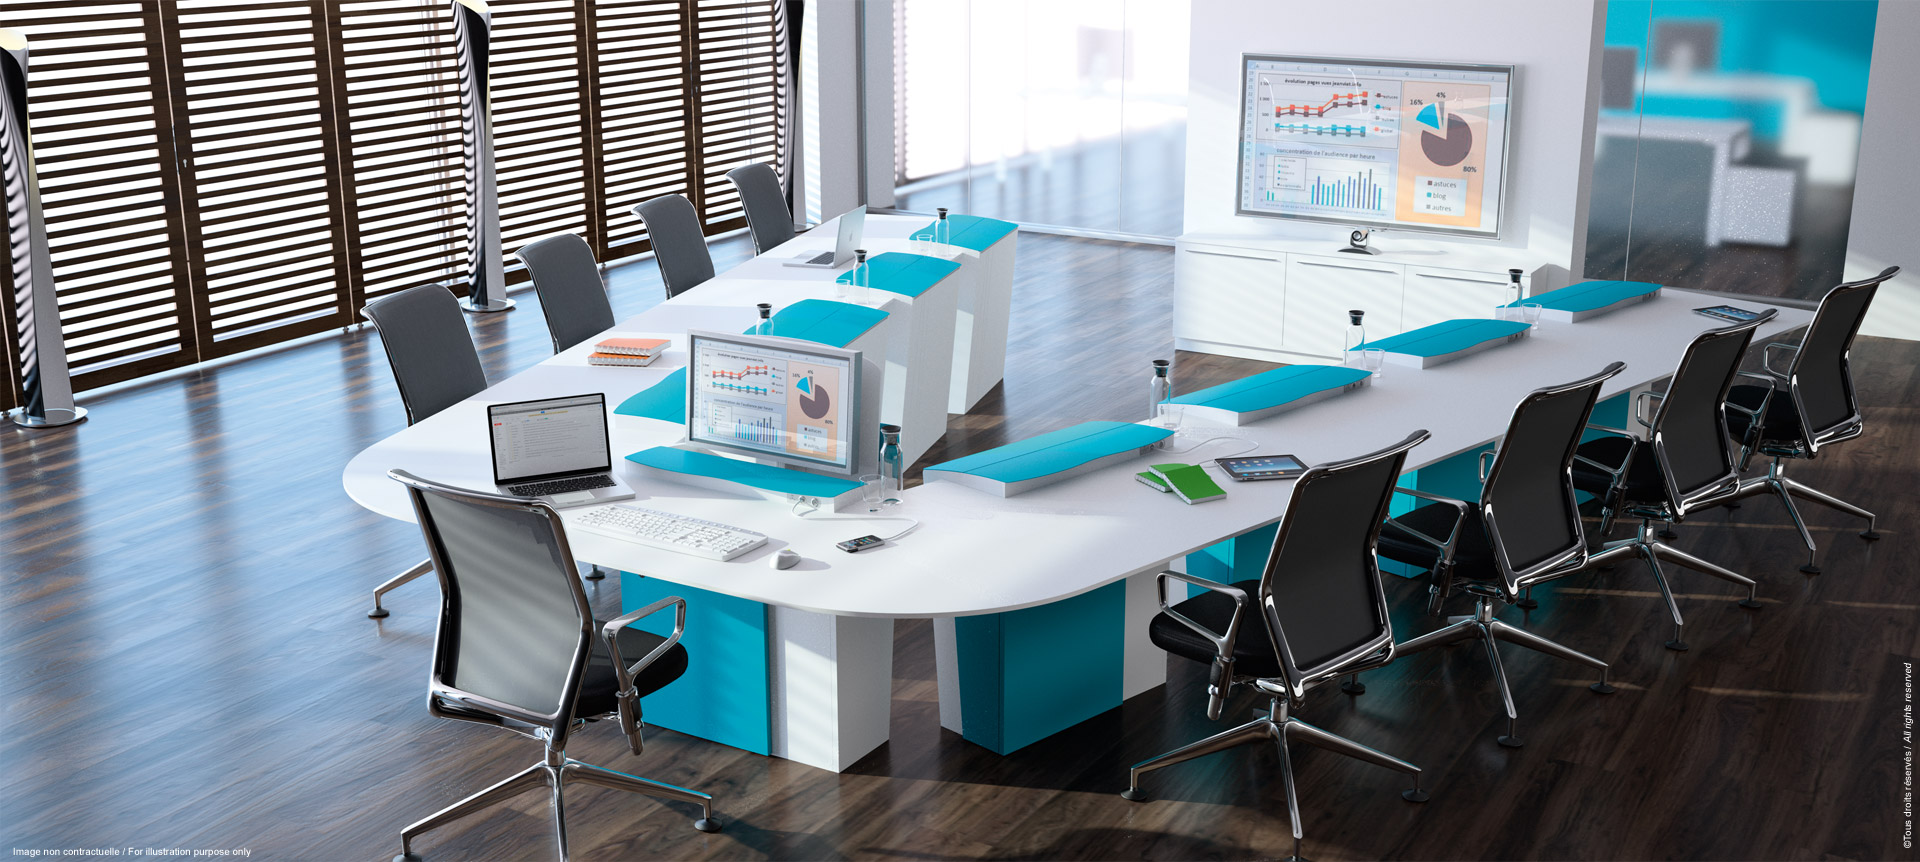 All-purpose meeting table